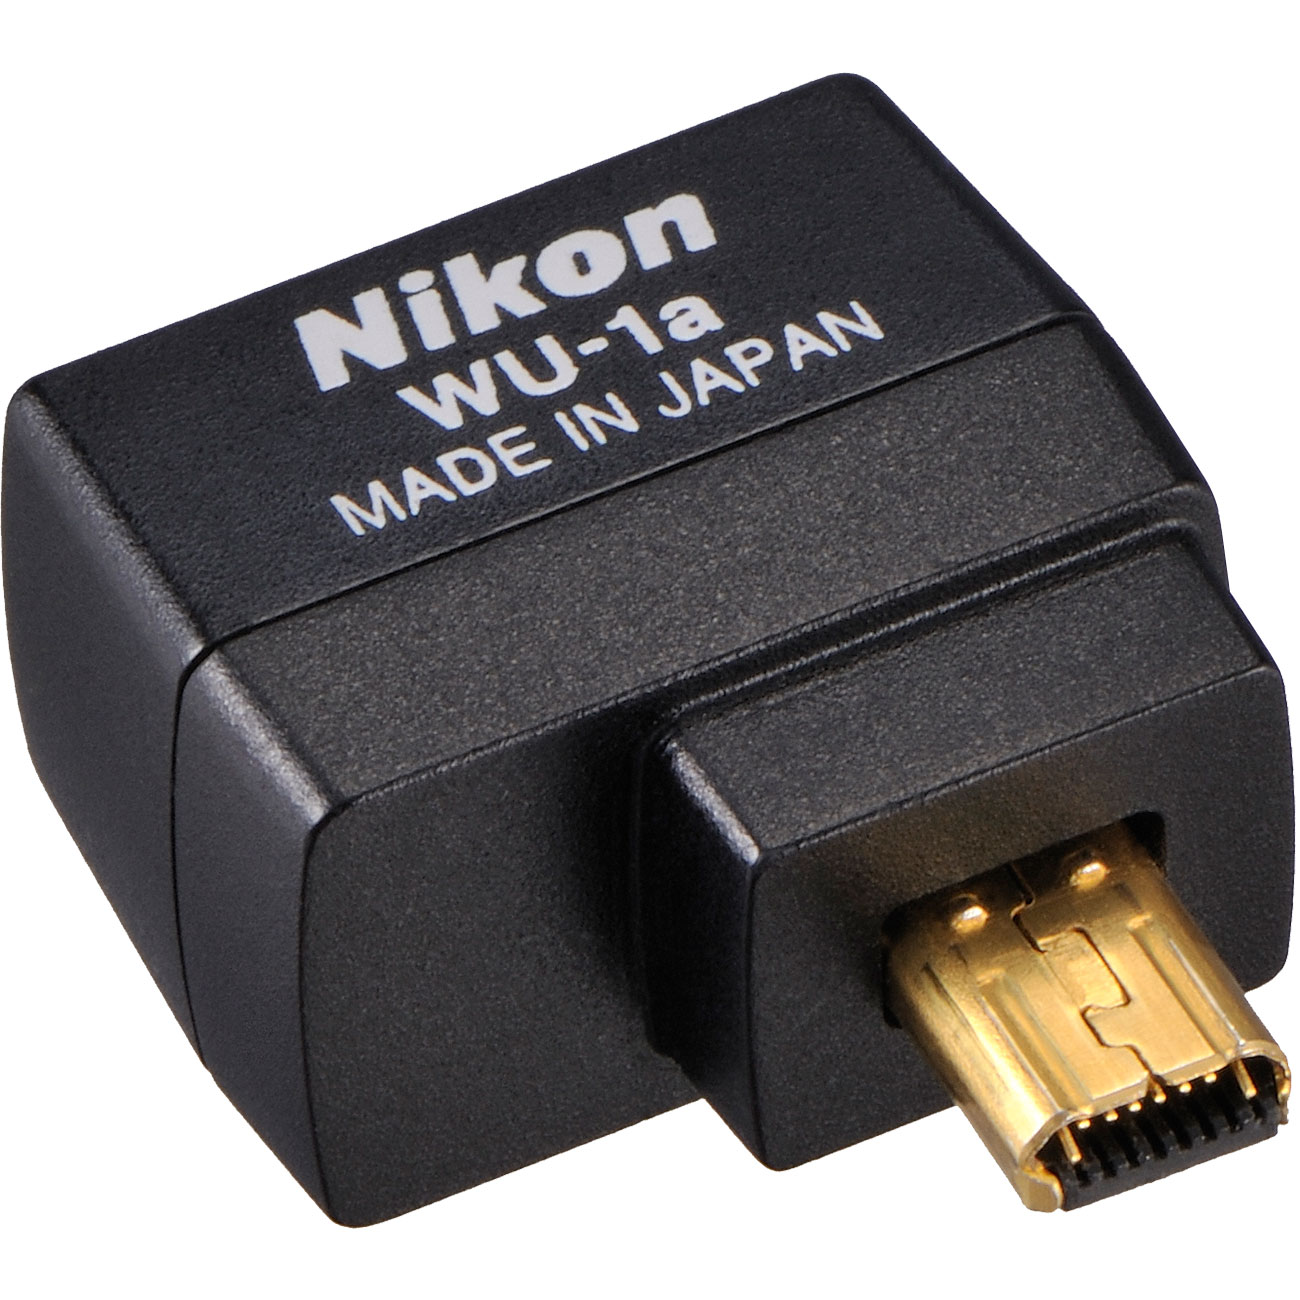 Nikon WU-1a Wireless Wi-Fi Mobile Adapter (for iPhone or Android) - Factory Refurbished for Coolpix A, P330, P520, P530, P7800, DF, D3200, D3300, D5200 & D7100 DSLR Camera